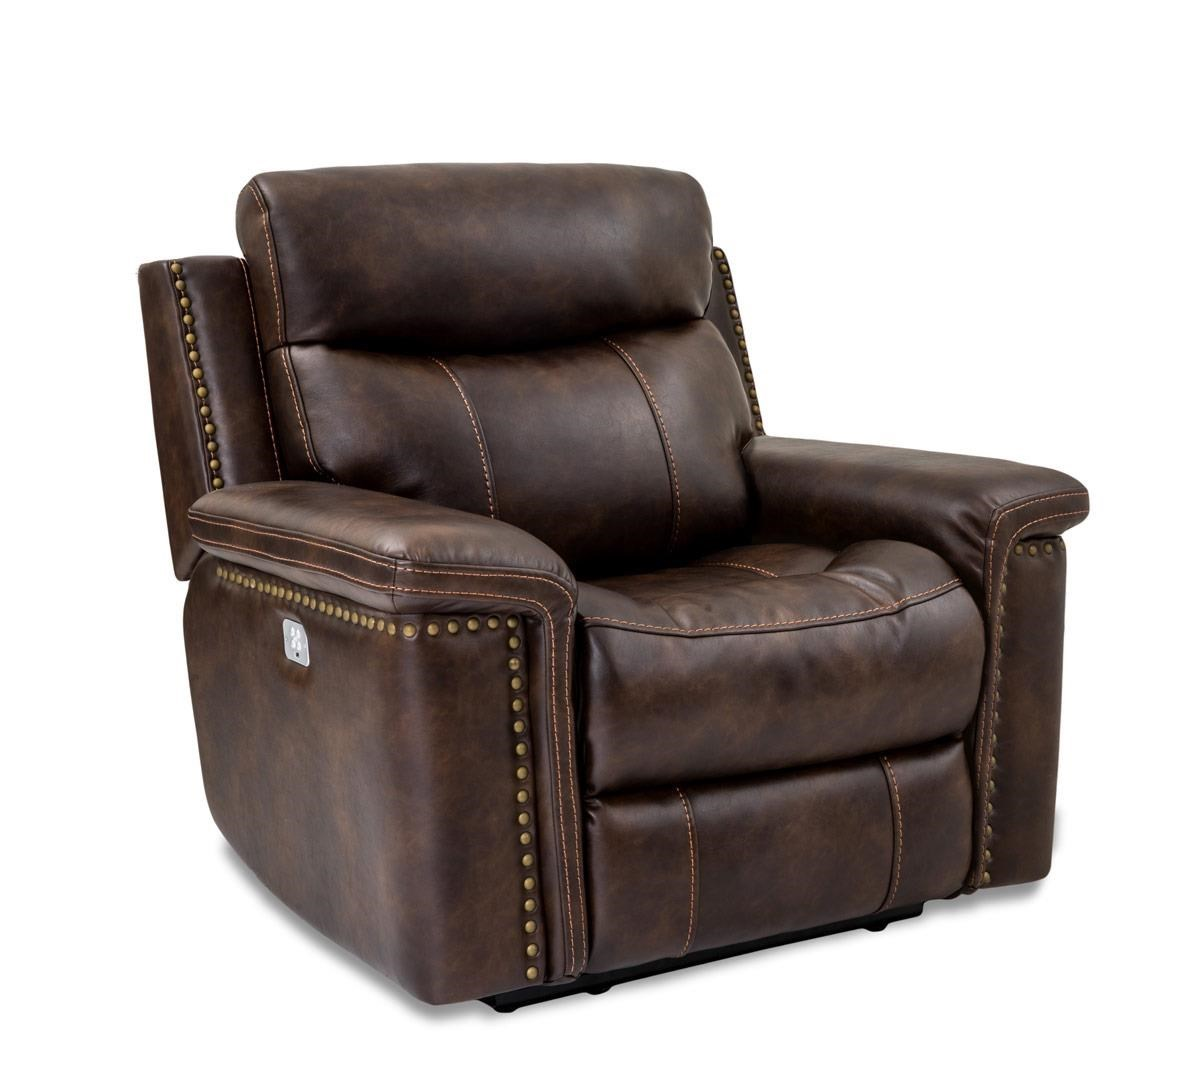 sofa phoenix slip covers malaysia leather creative of with chaise